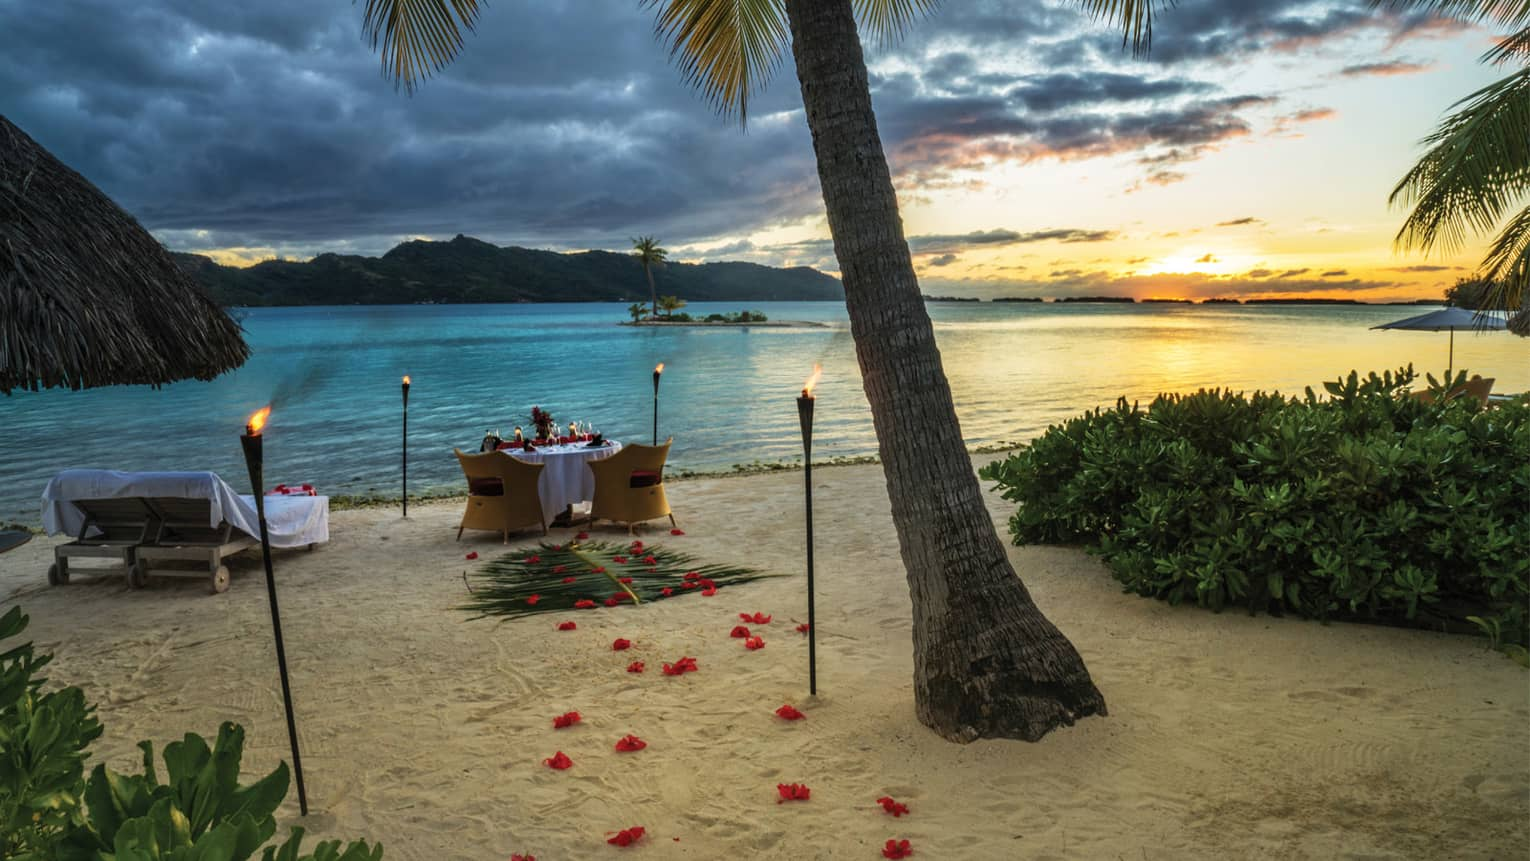 Rose petals and torches lead to a candlelit dinner table on the white sand beach by shore  at sunset